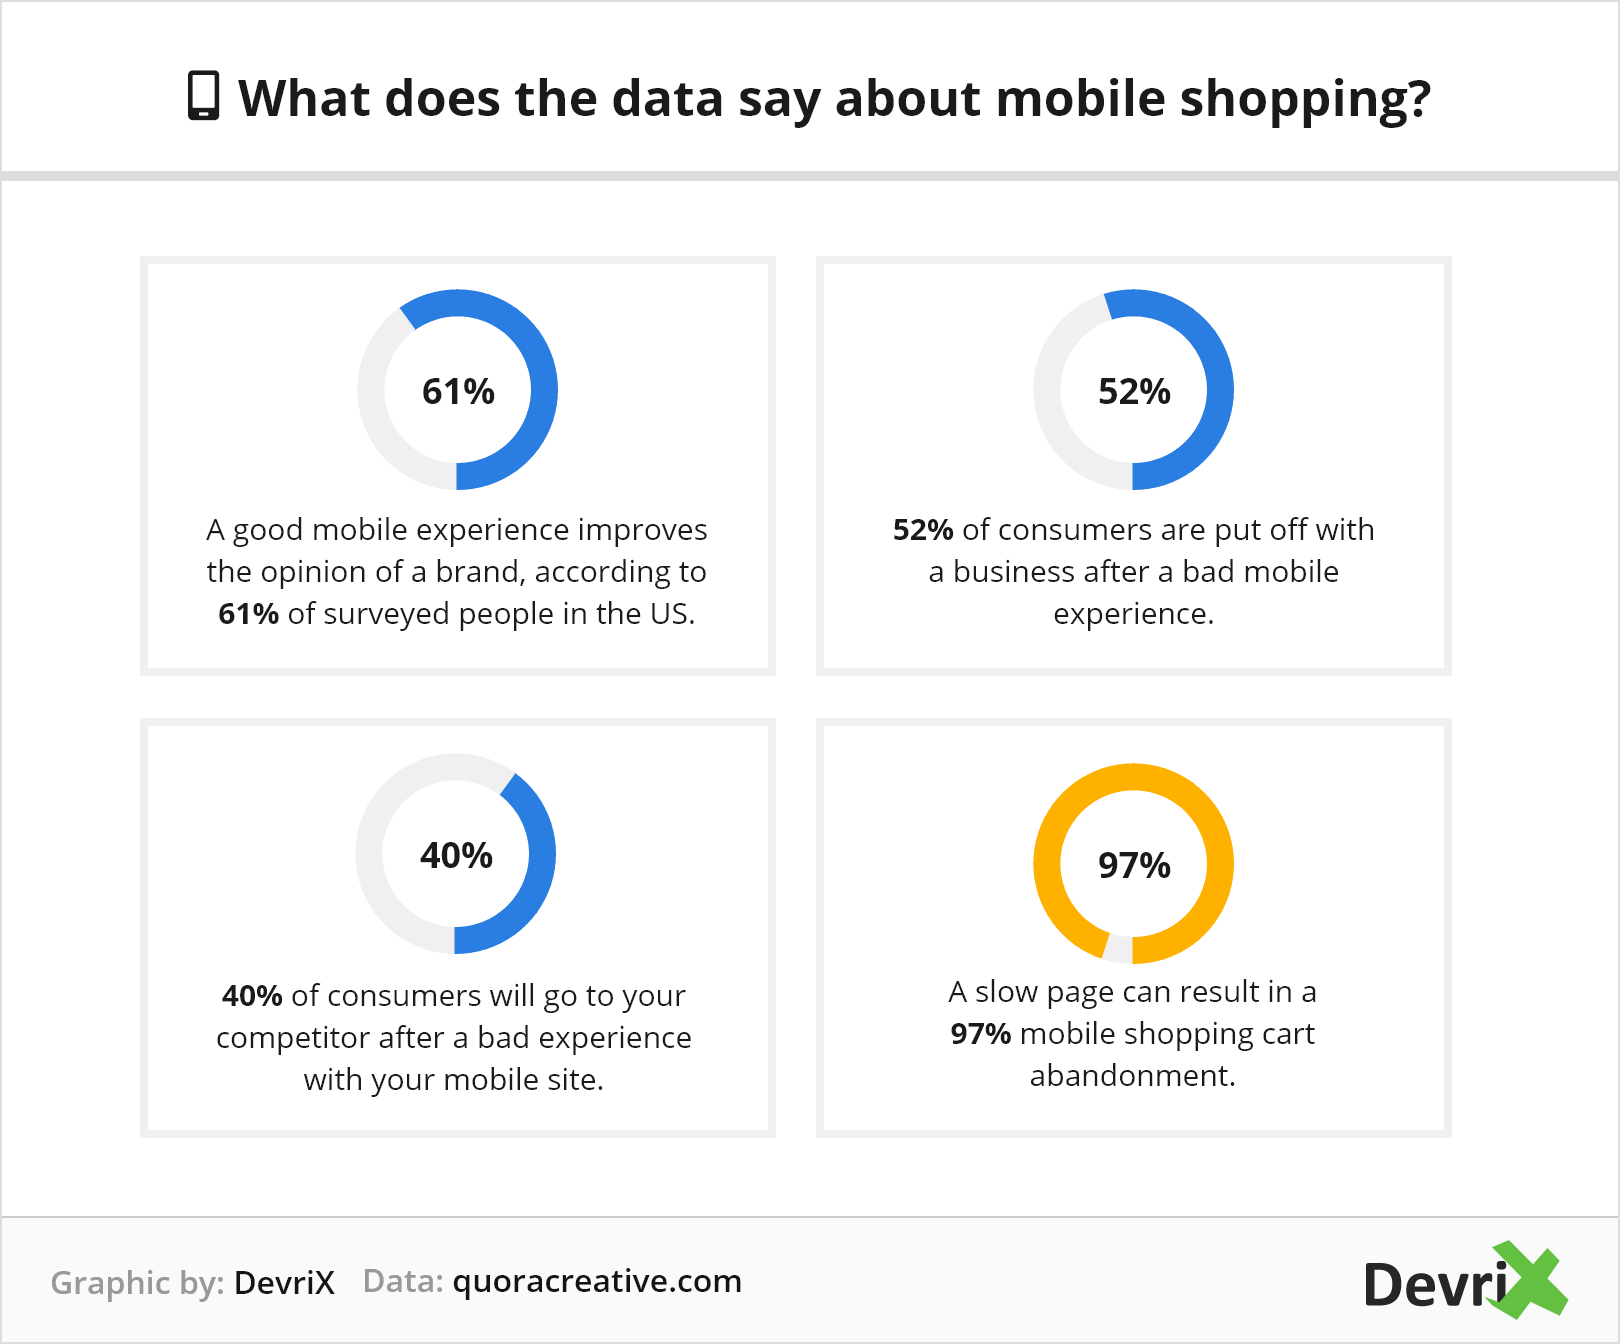 What does the data say about mobile shopping